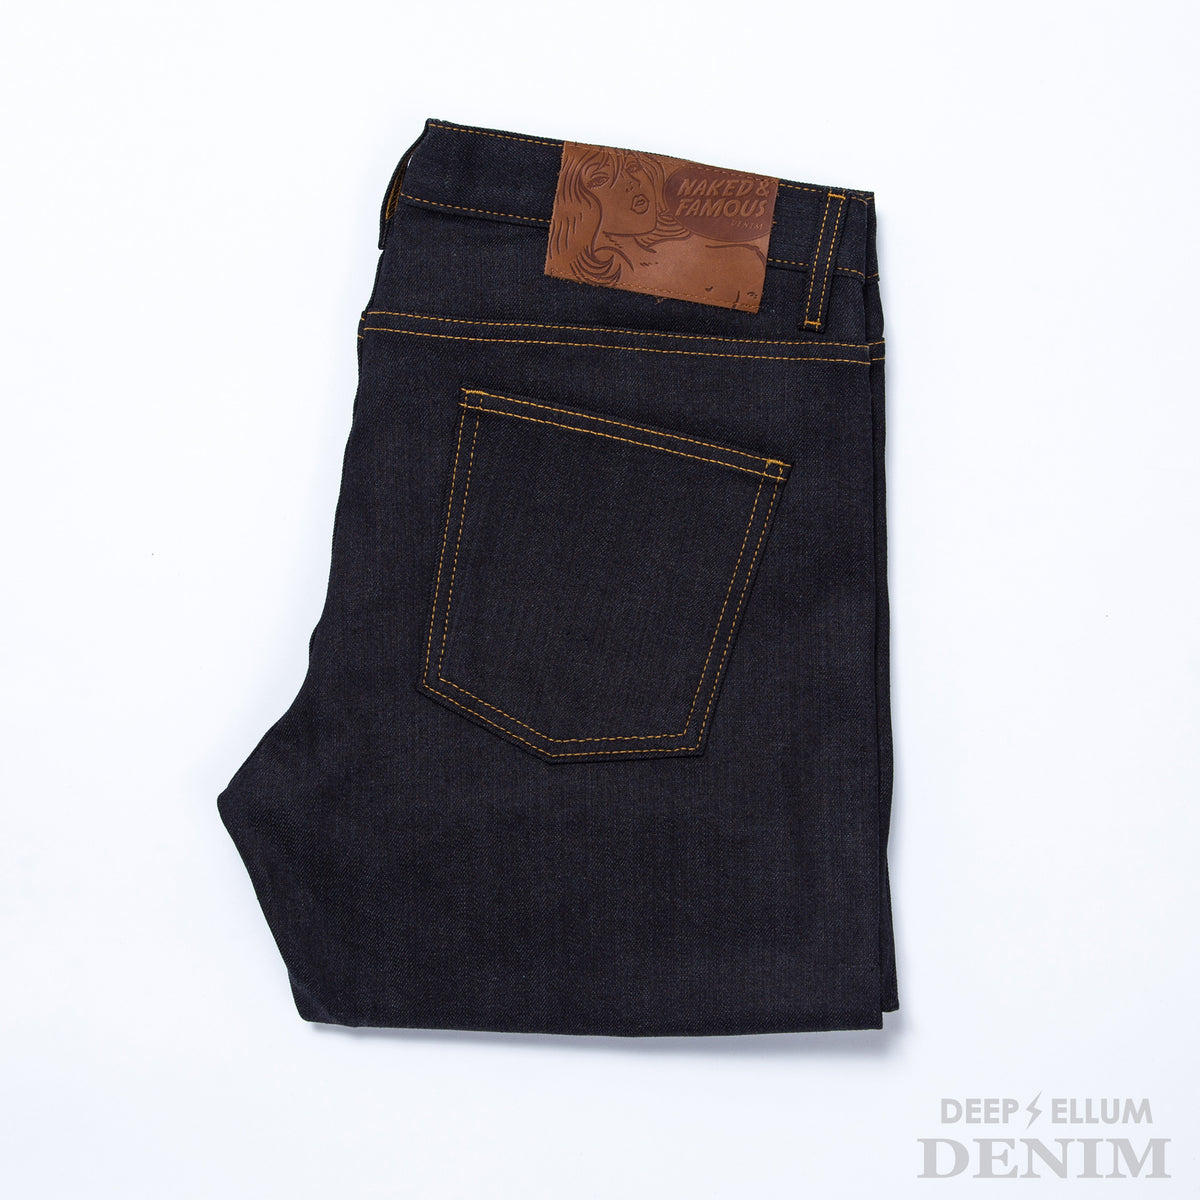 Deep Ellum Denim